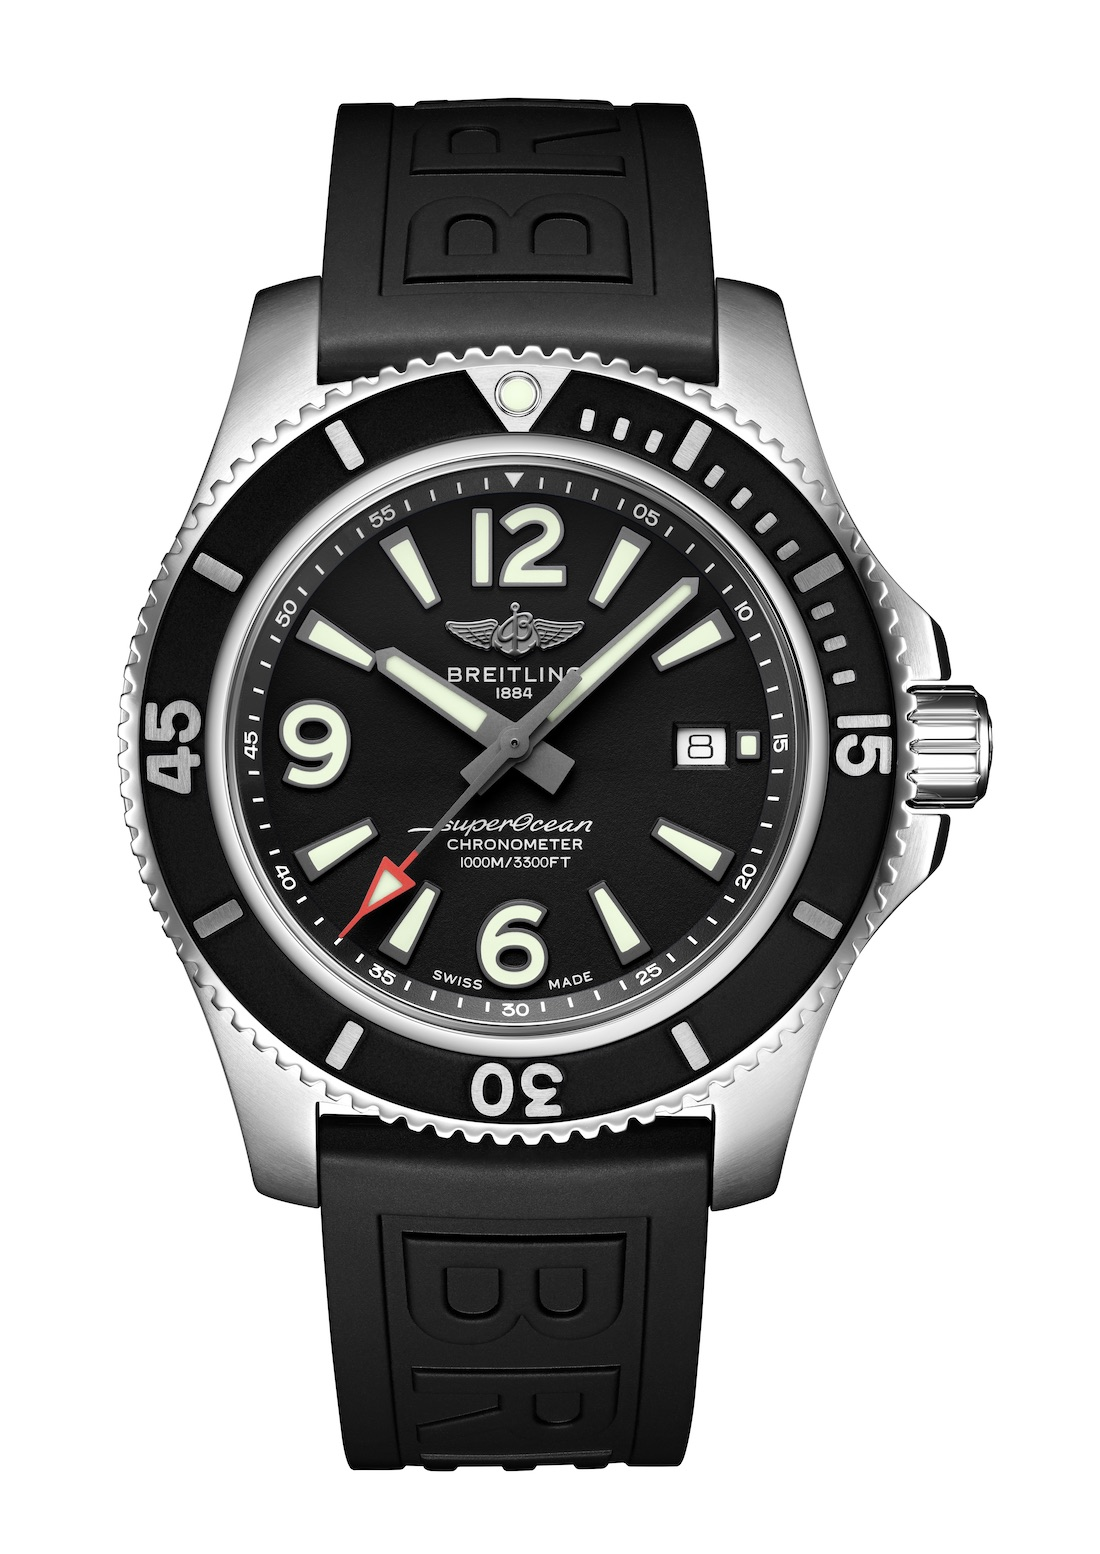 07_Superocean 44 with black dial and black Diver Pro III rubber strap_22862_19-03-19.jpg